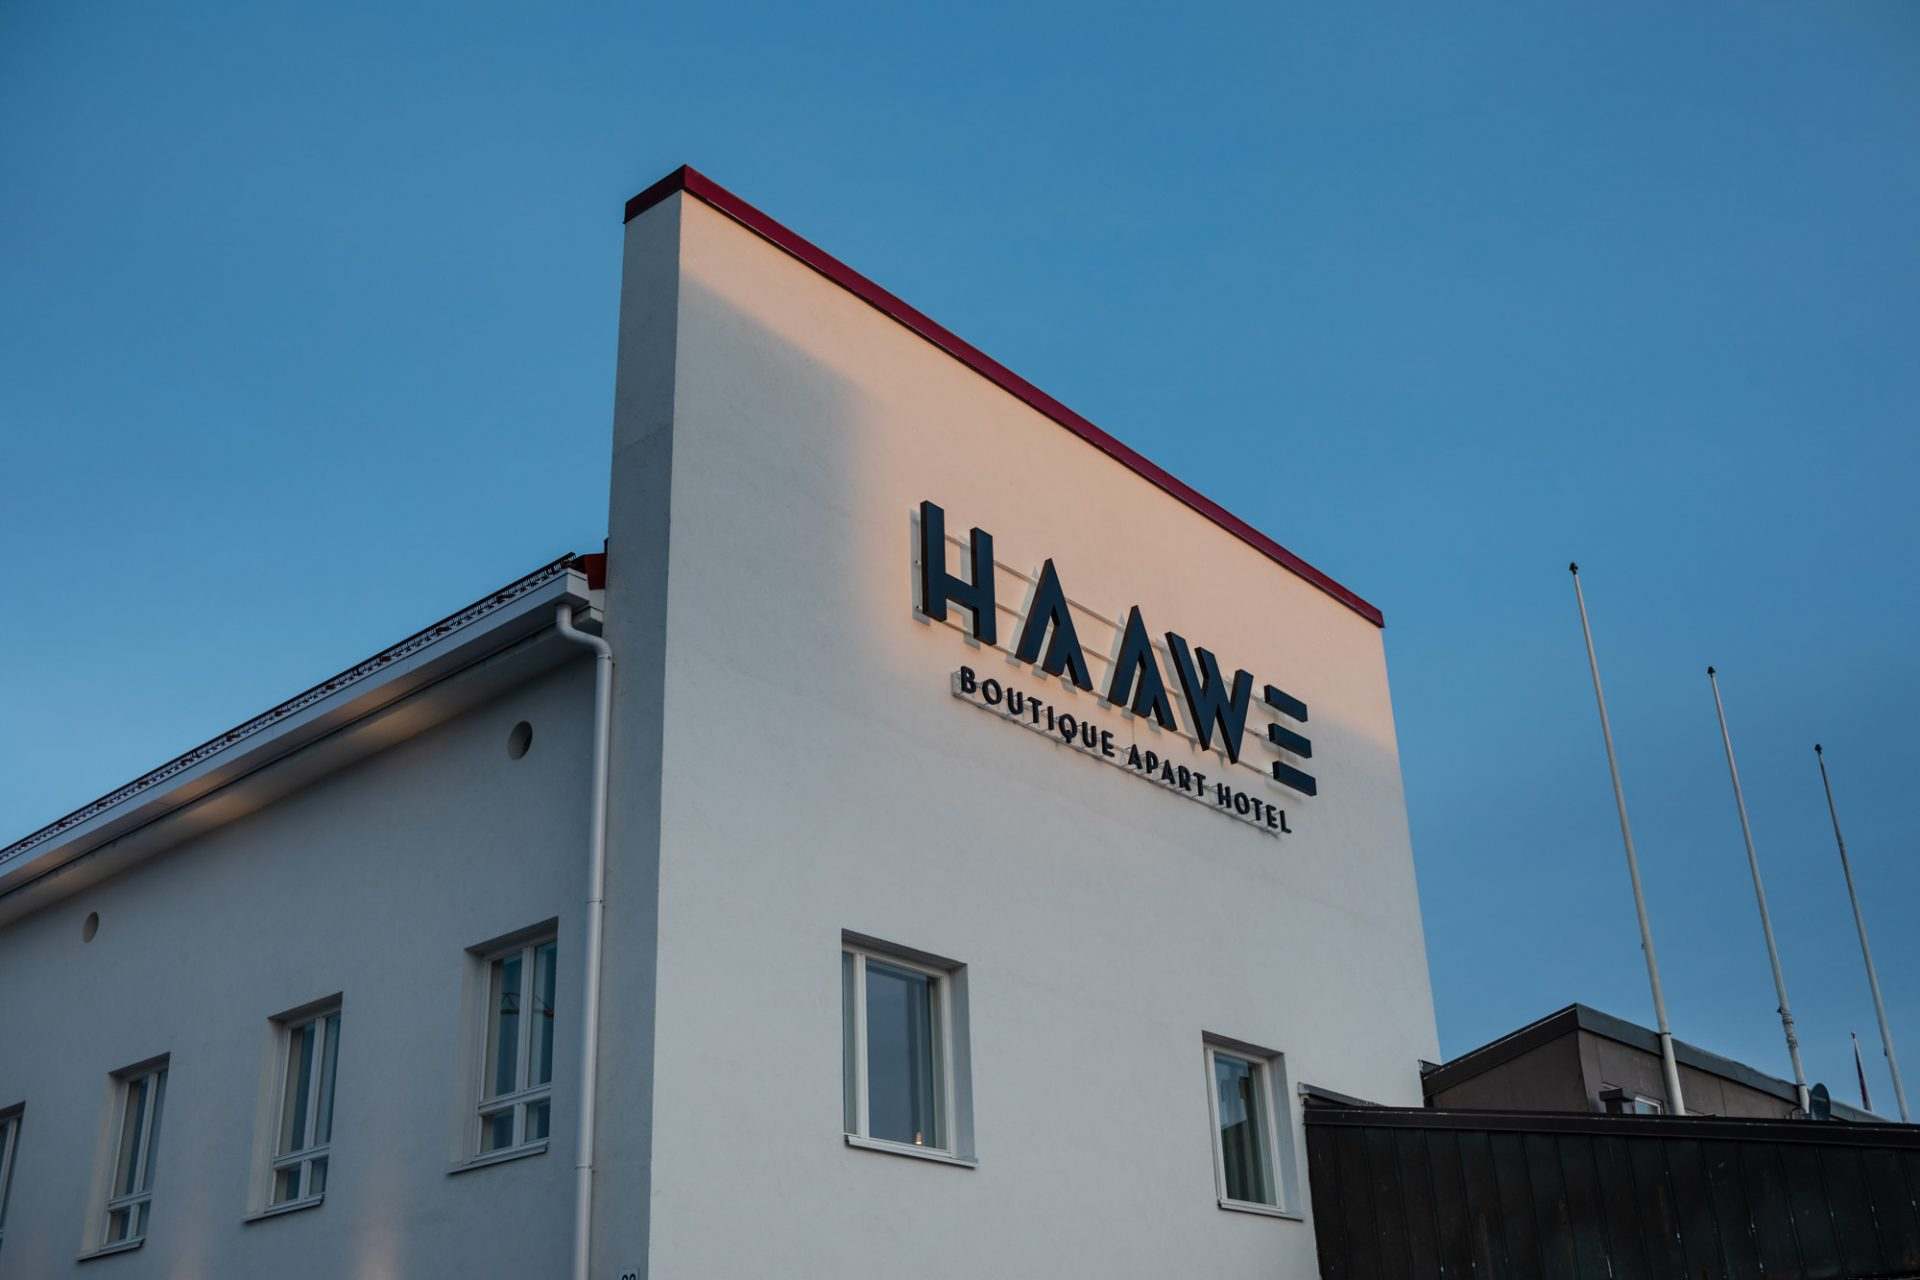 The recognisable faux façade of Haawe